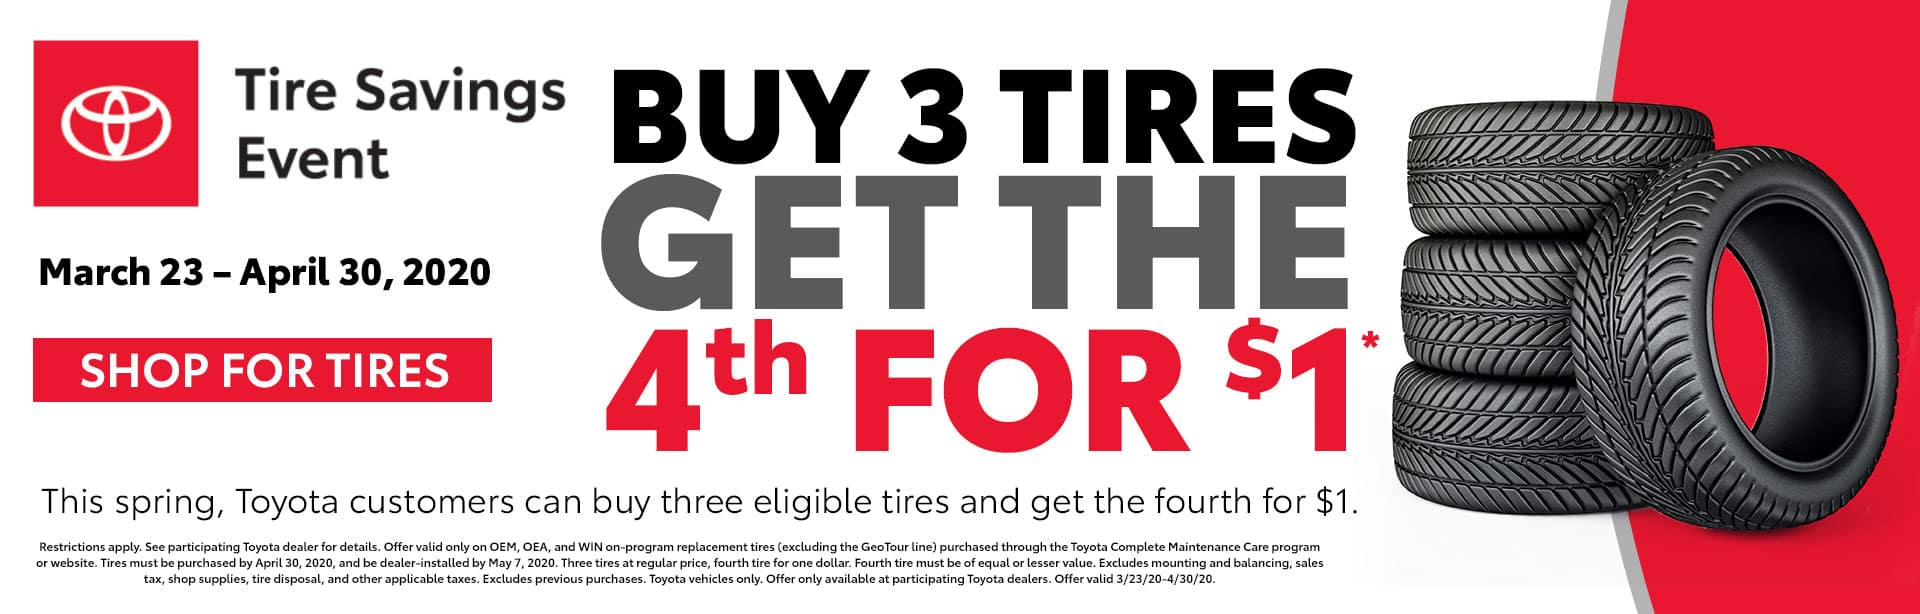 Buy 3 Tires Get The 4th For $1* at Bev Smith Toyota